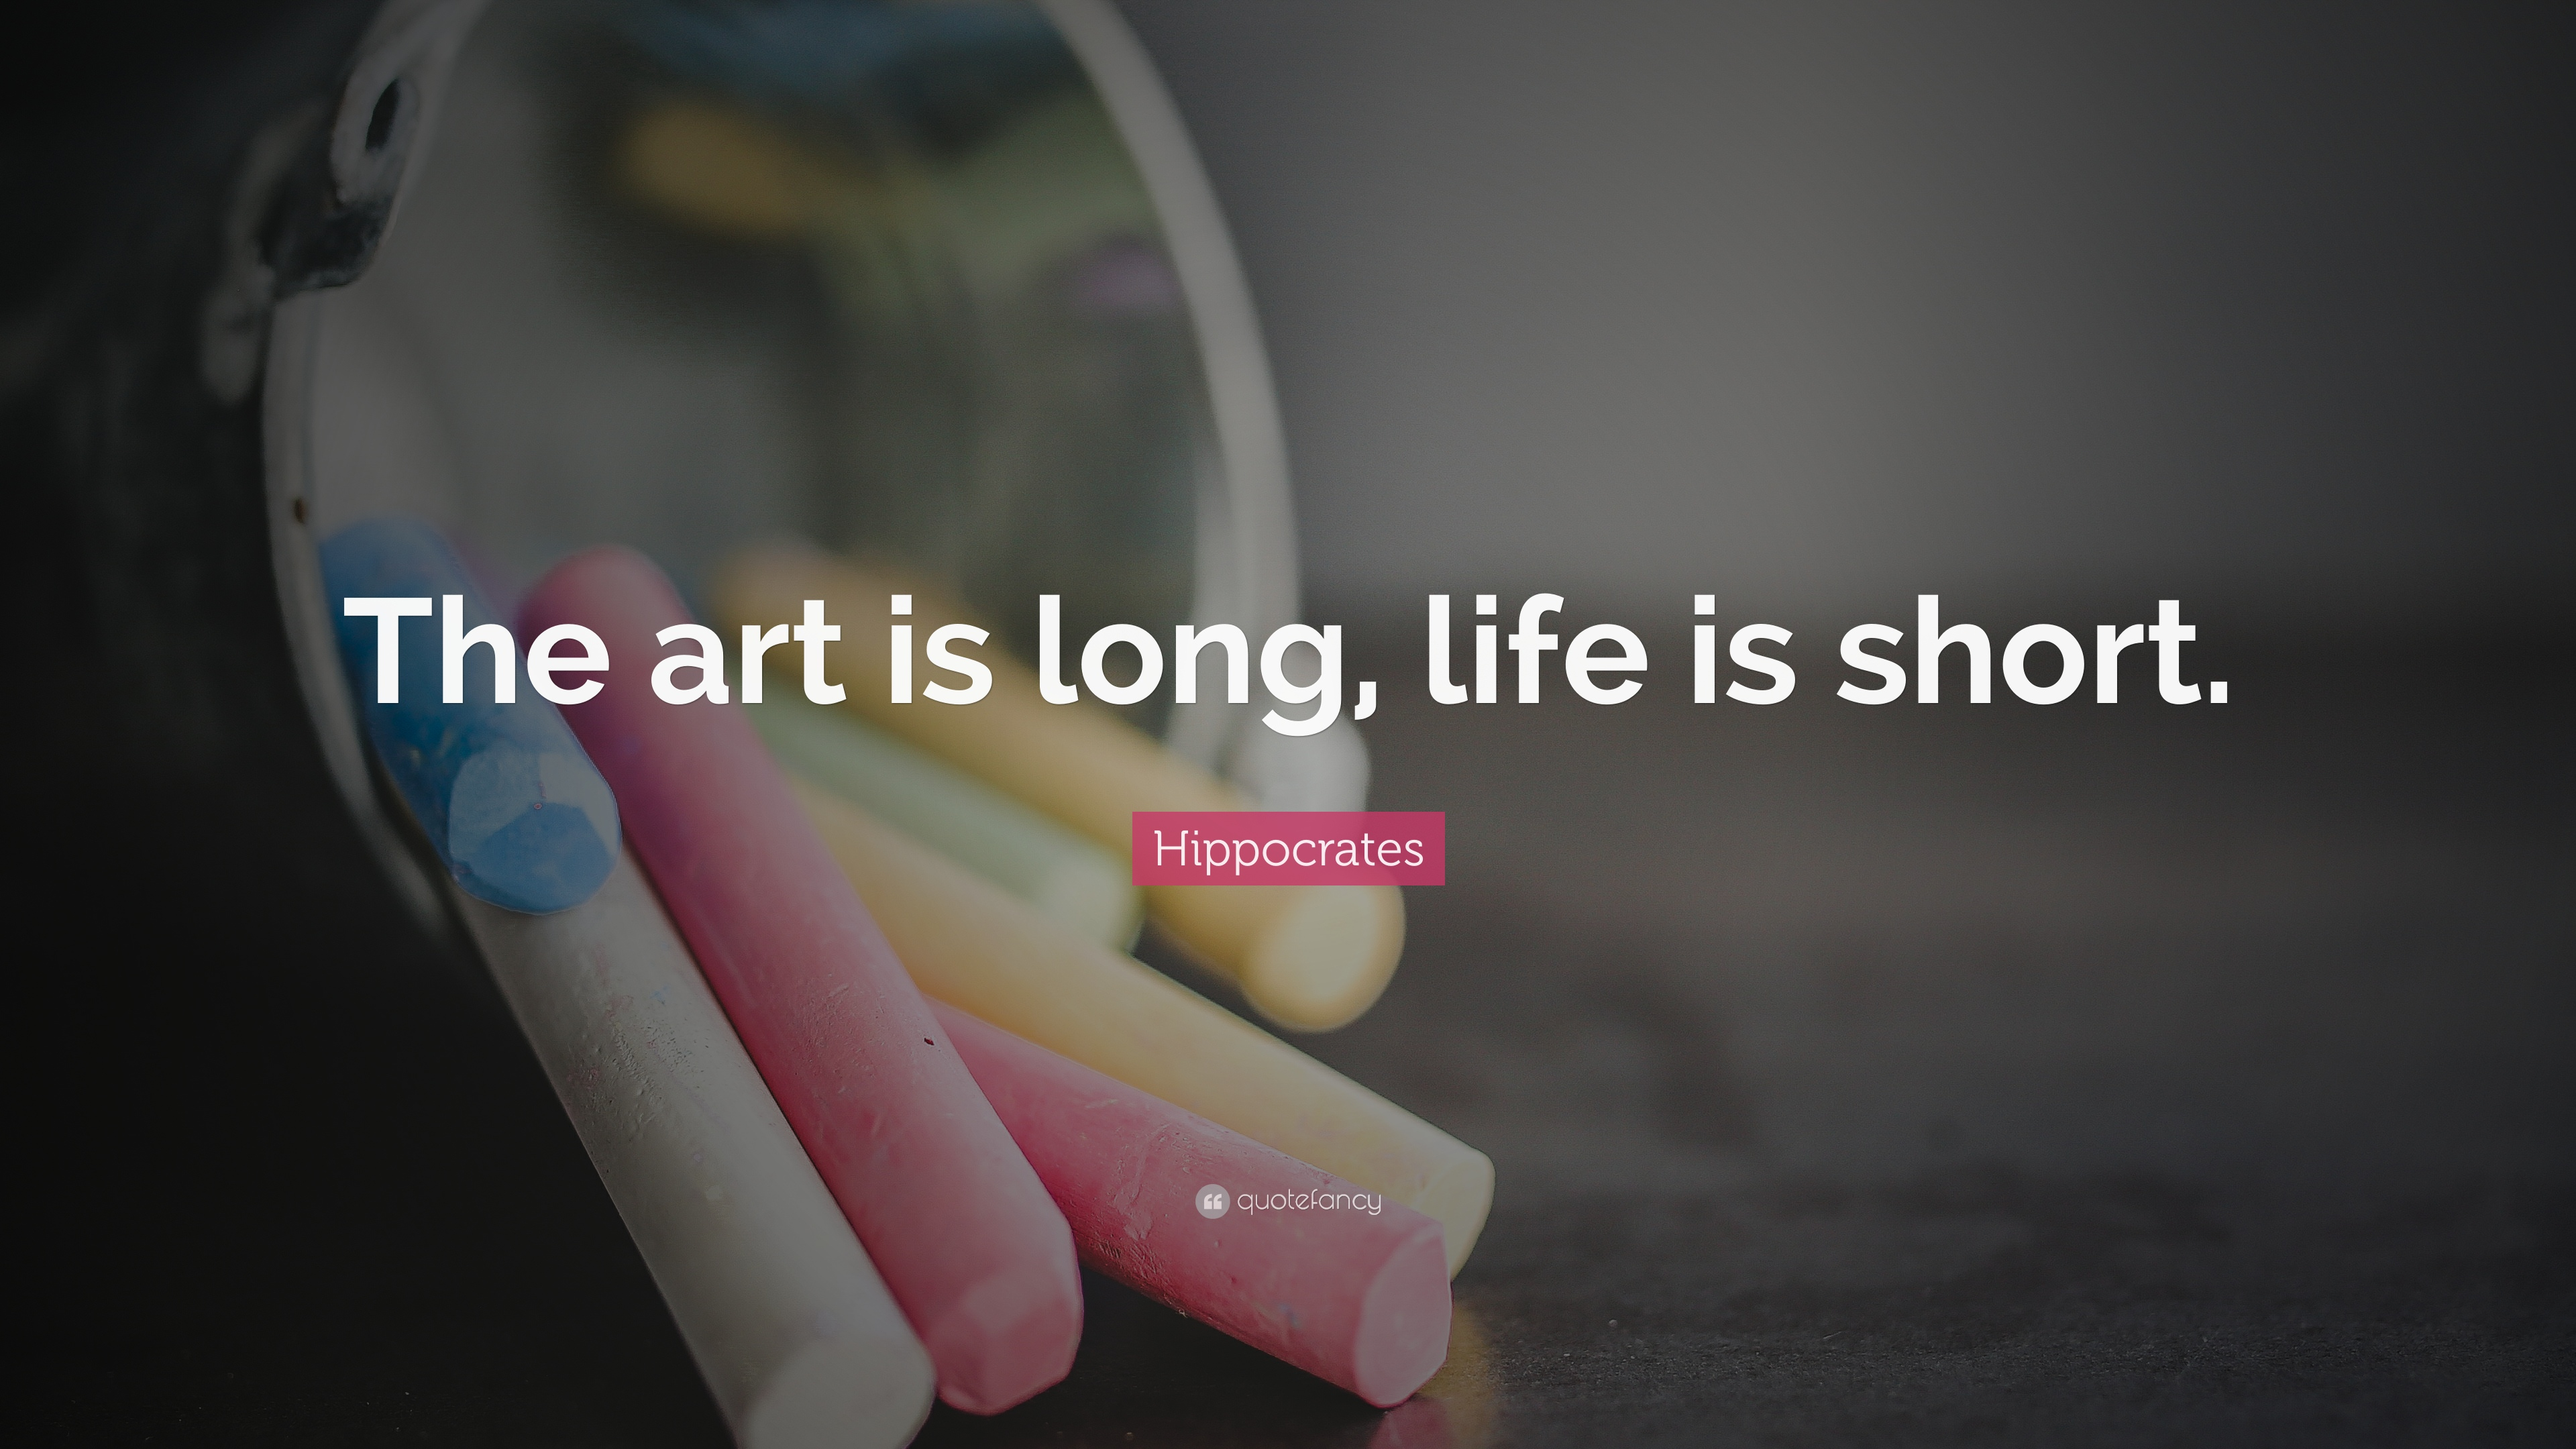 art is long life is short meaning